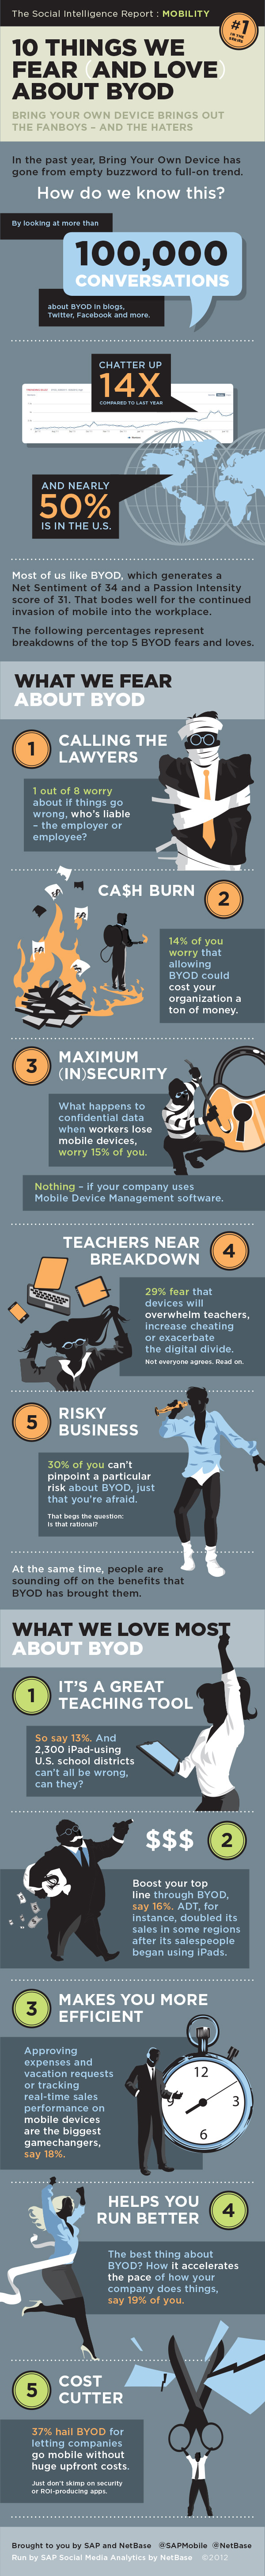 Fear and Love About Byod-infographic